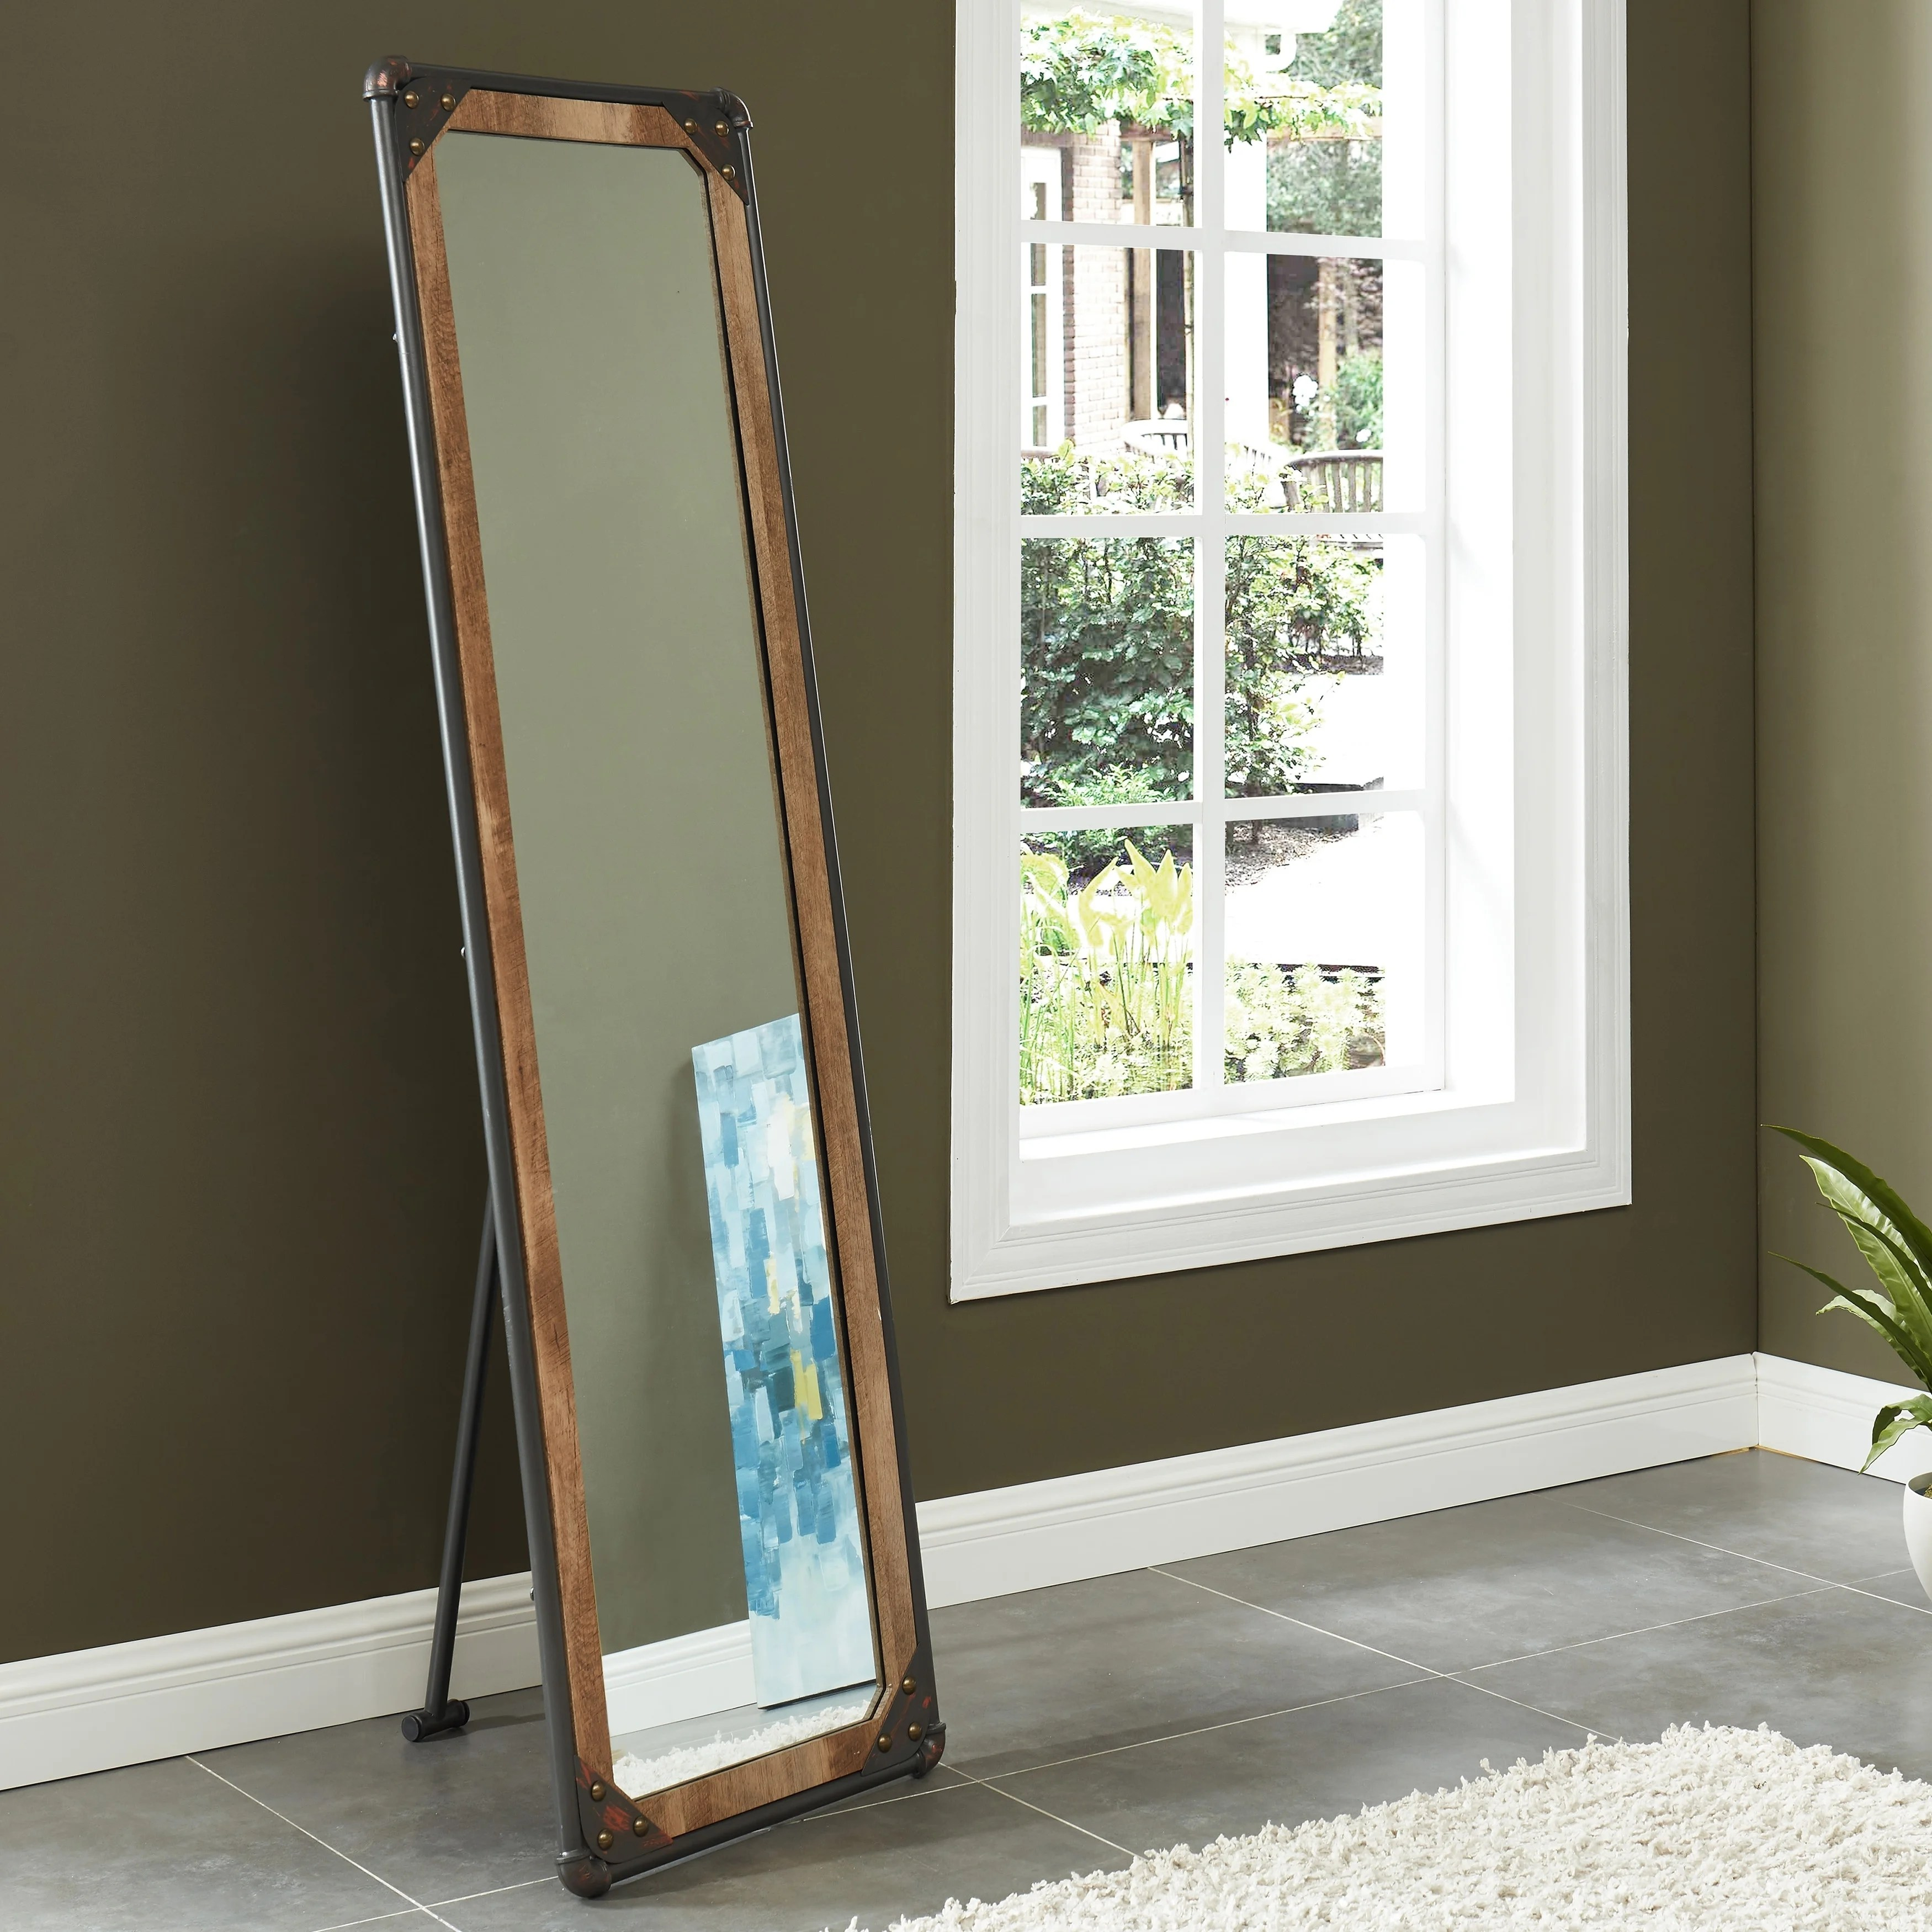 Standing Mirror Revo Industrial 68 Inch Free Standing Mirror By Foa Black Copper N A